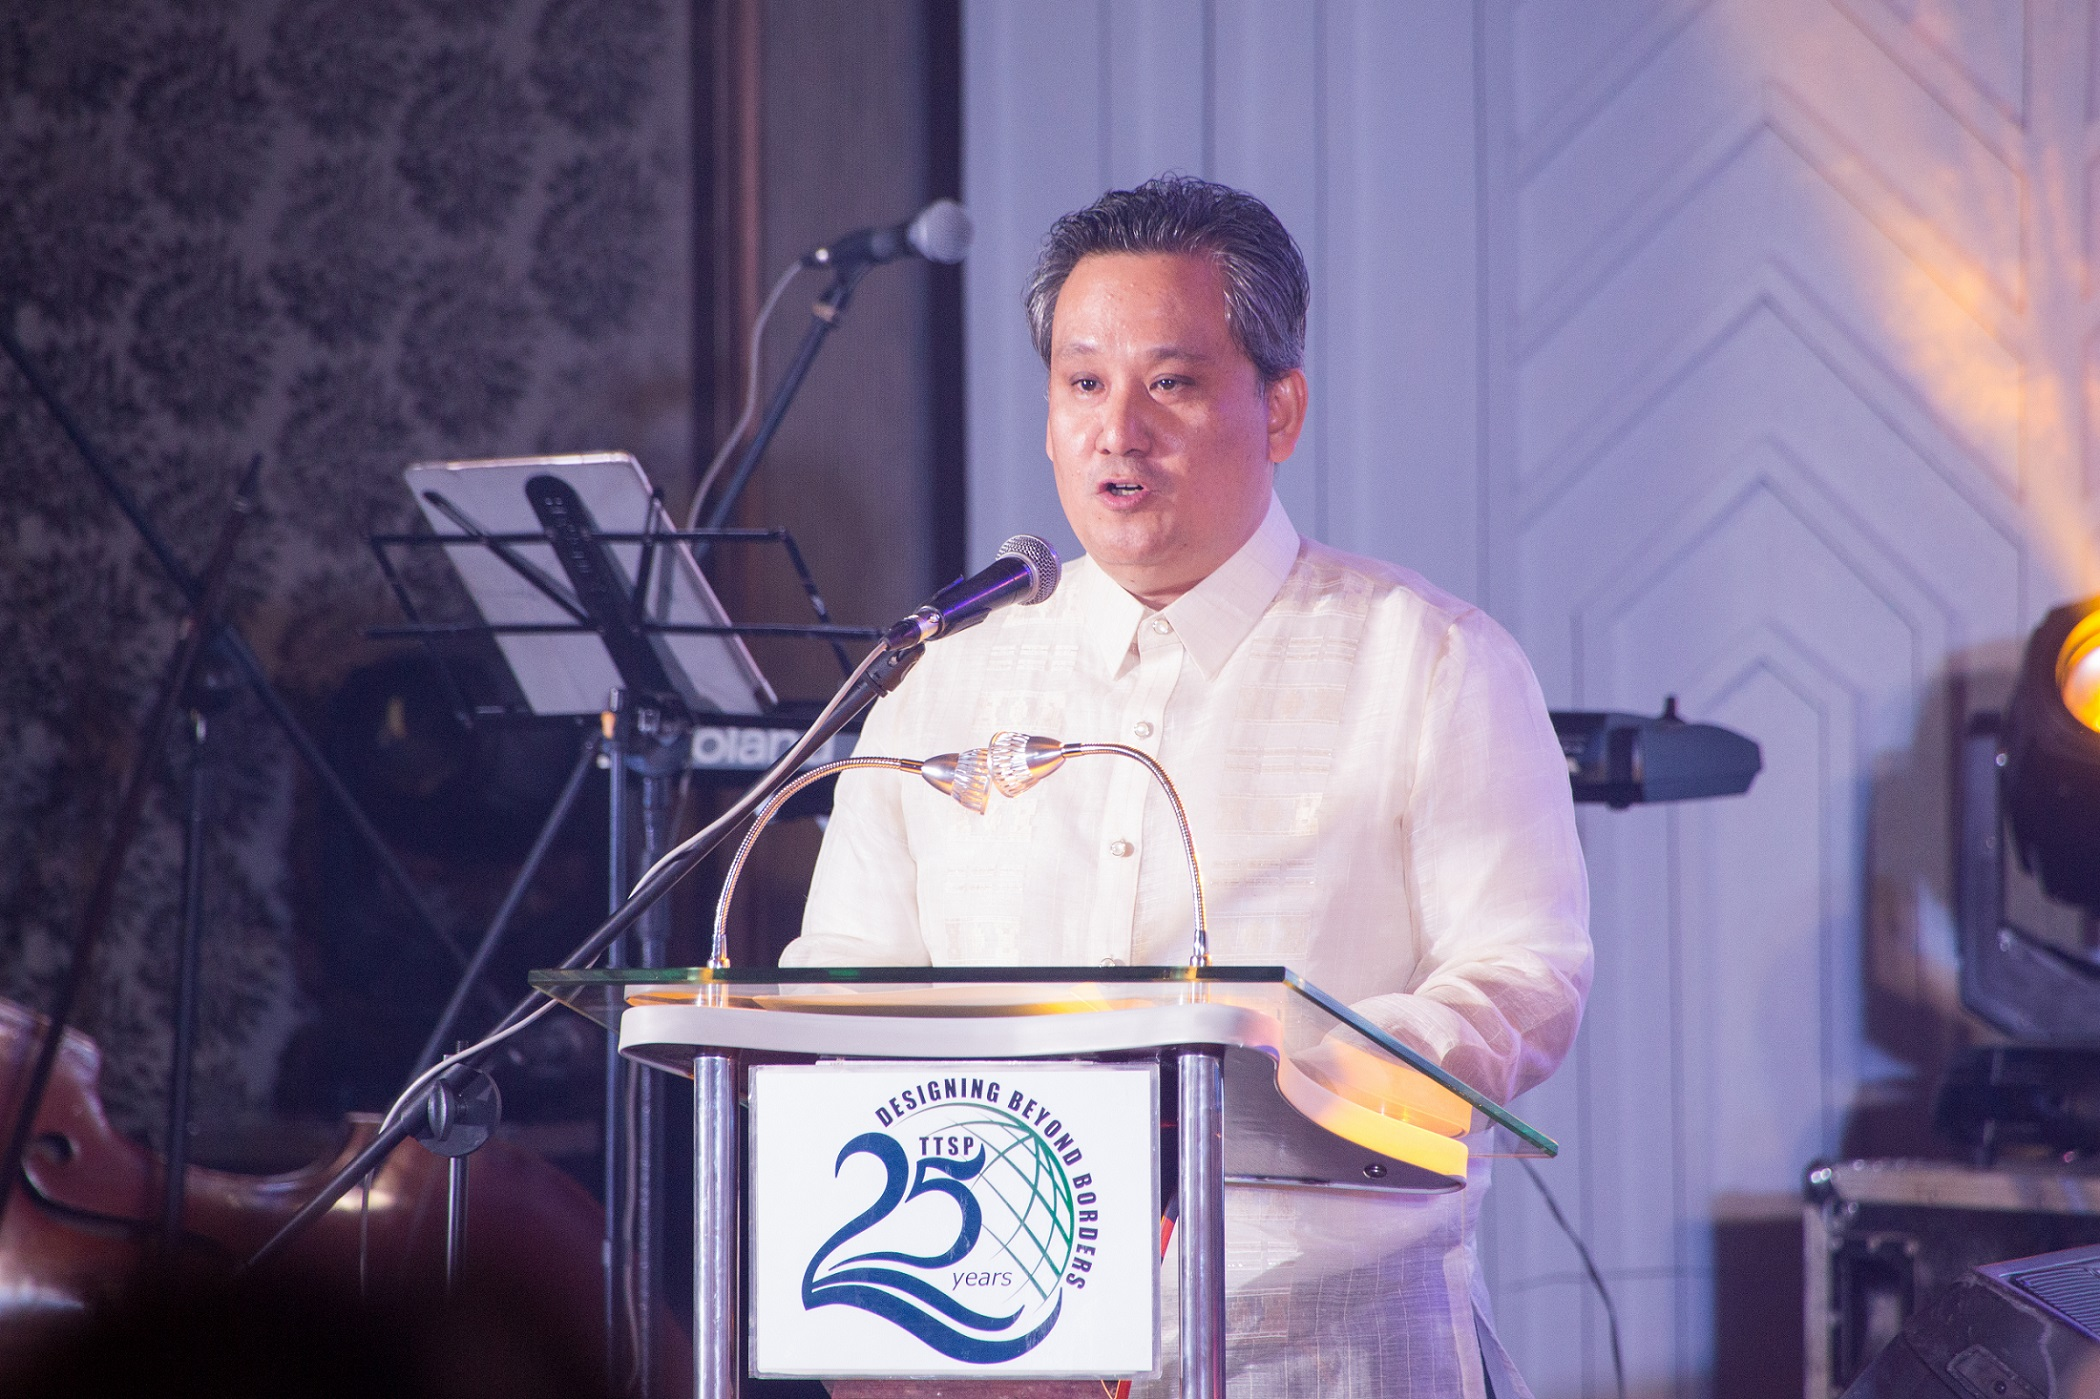 TSUNEISHI TECHNICAL SERVICES (PHILS.), Inc., the Design Centre in the Philippines, Holds a Ceremony to Celebrate its 25th Anniversary